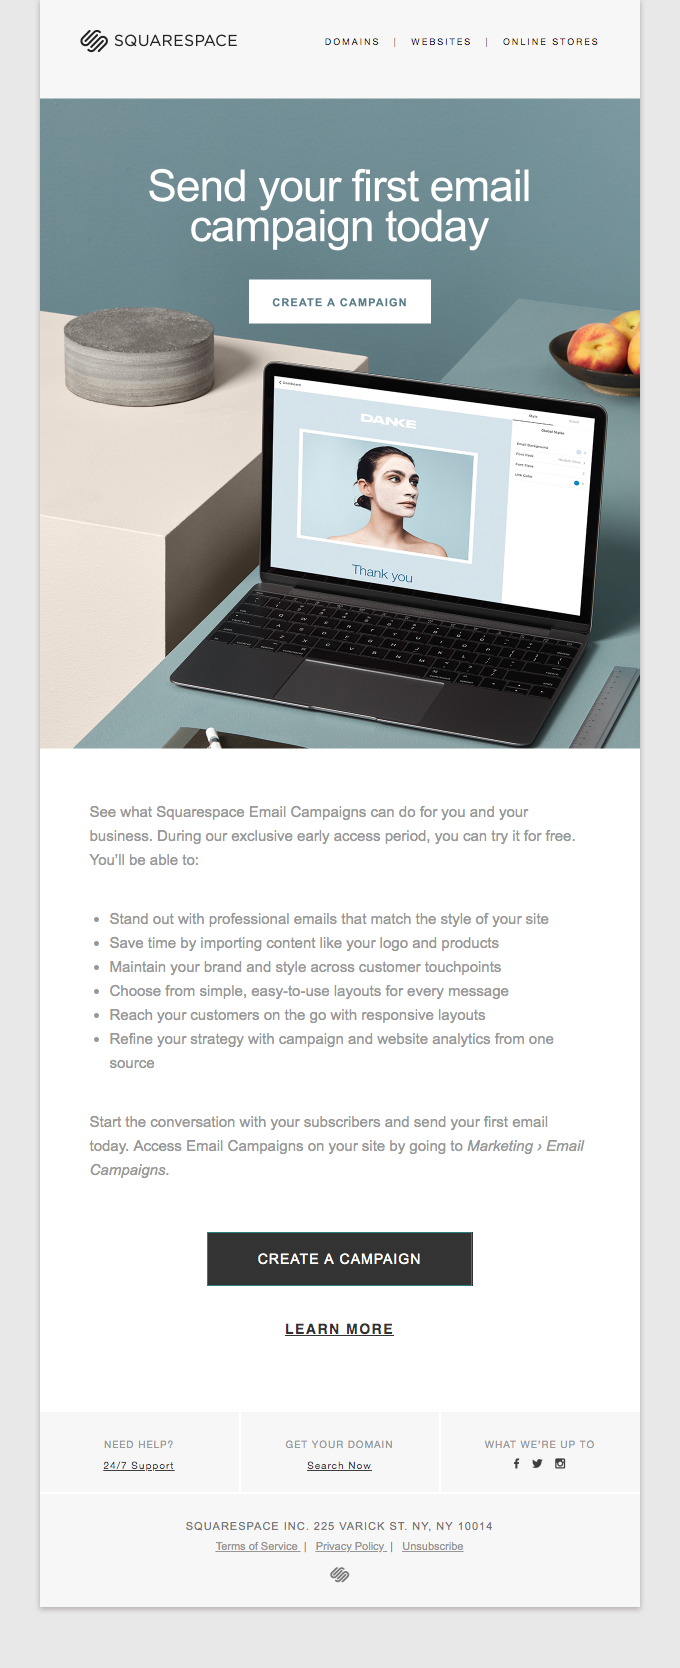 You've received early access to Email Campaigns